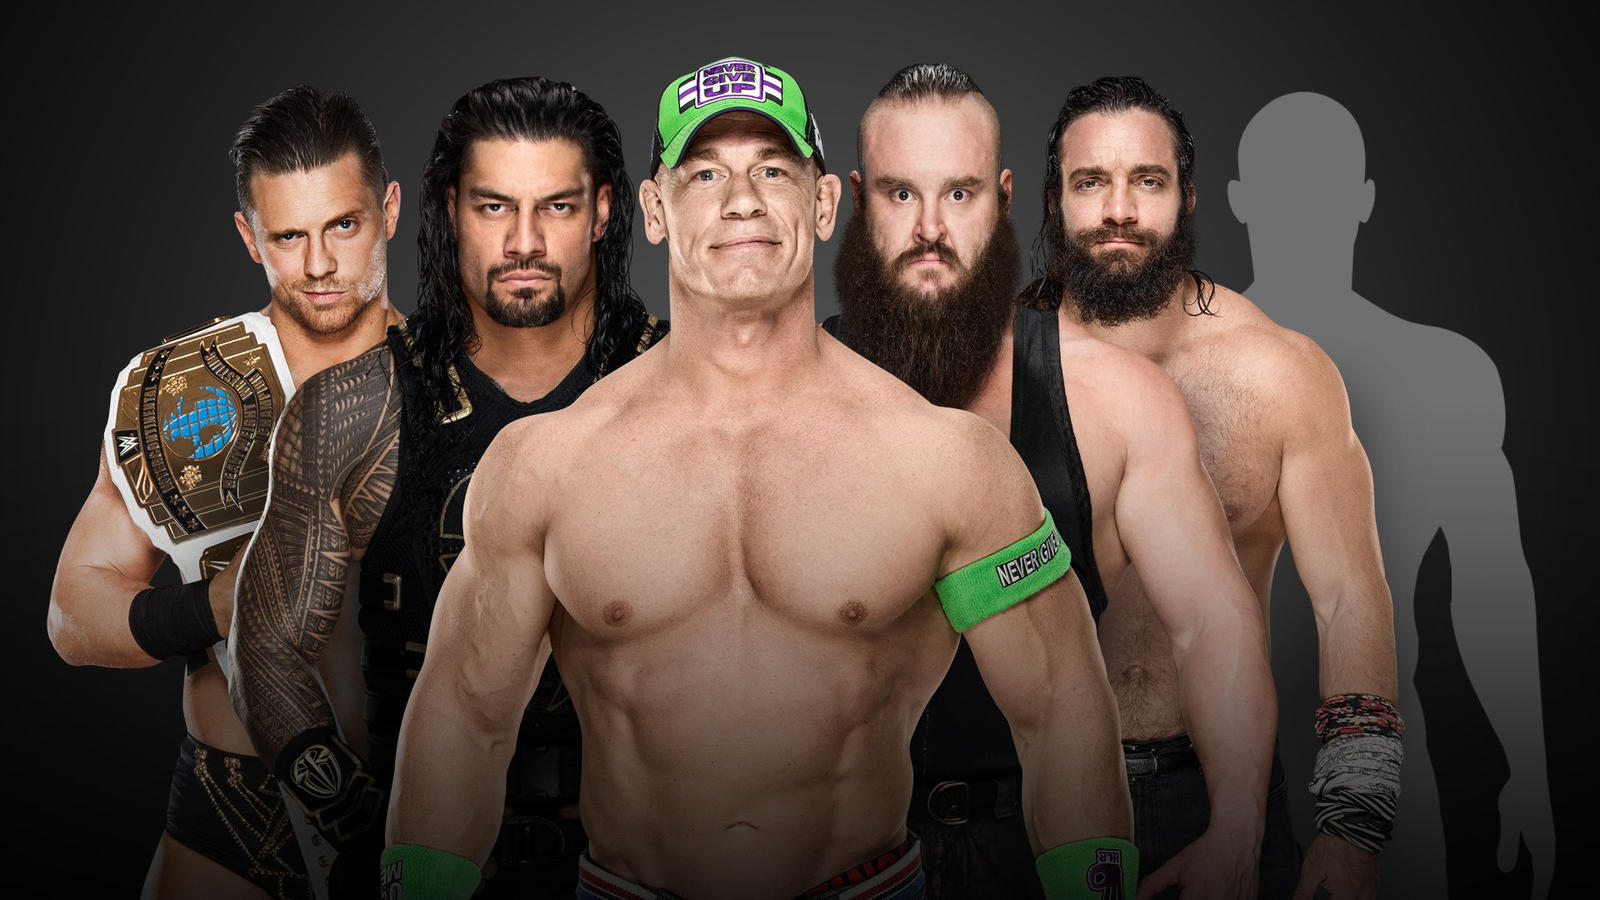 Confirmed and Potential Matches for WWE Elimination Chamber 2018 20180129_EC_6Man_upd--241d468f1501913fbd2af5ee44a1fafc